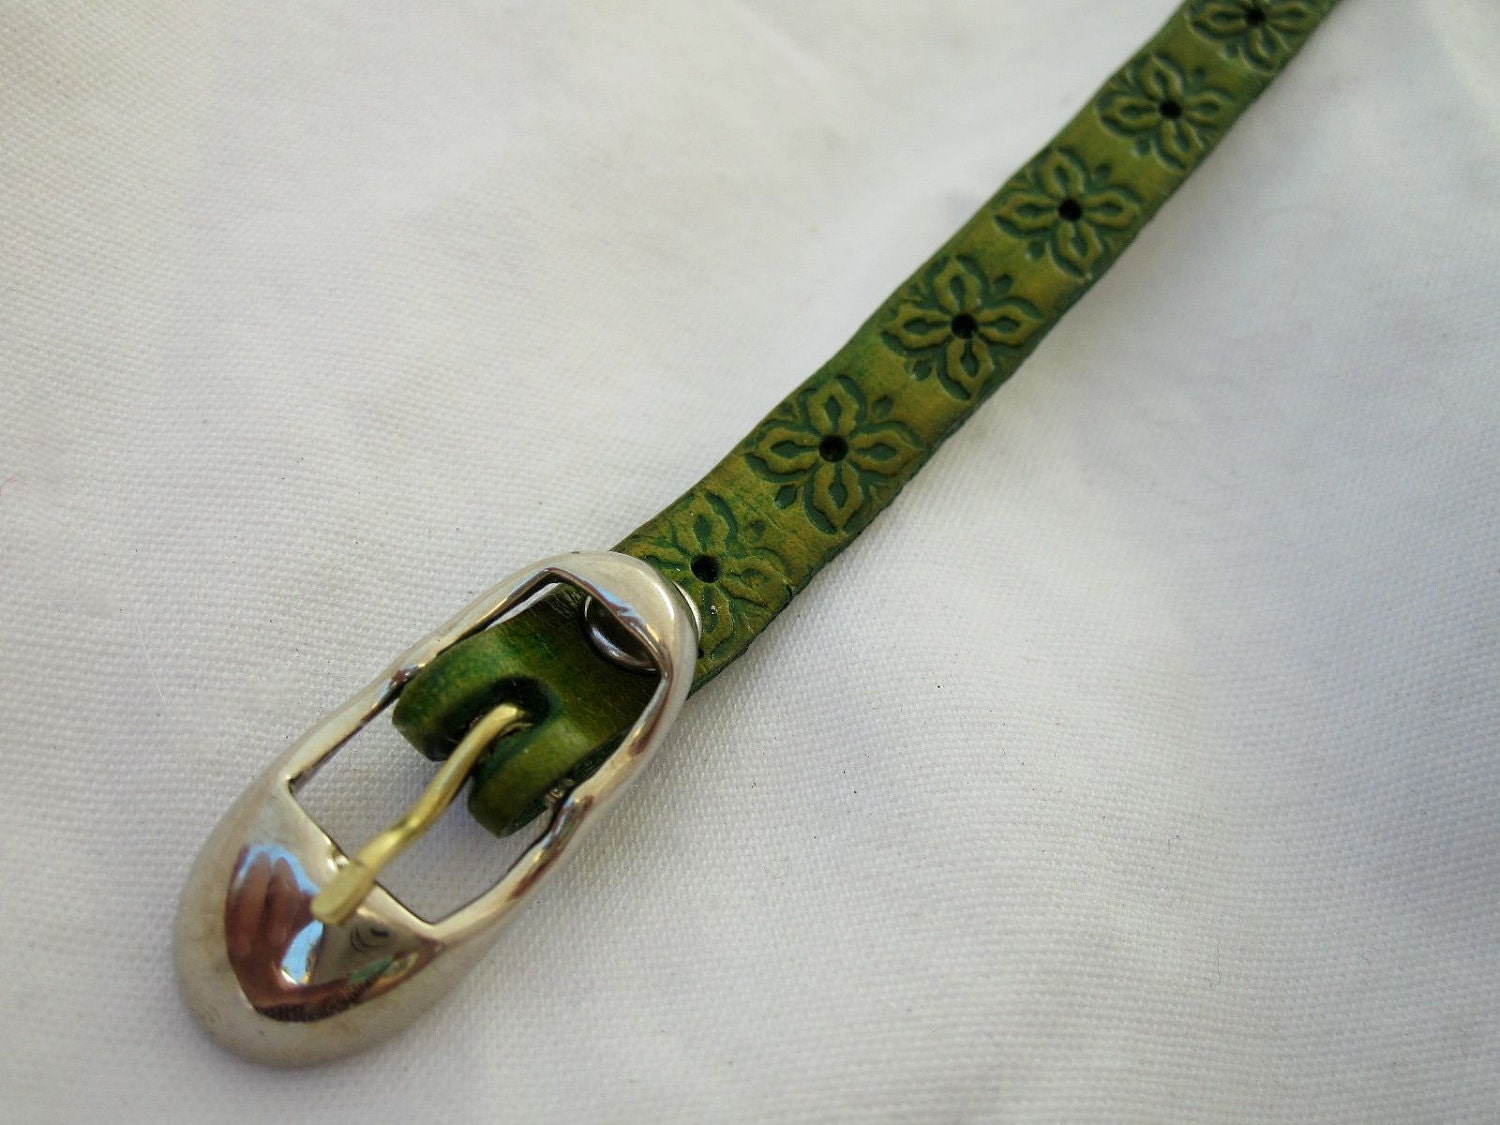 Leaf Green tooled leather bracelet strap